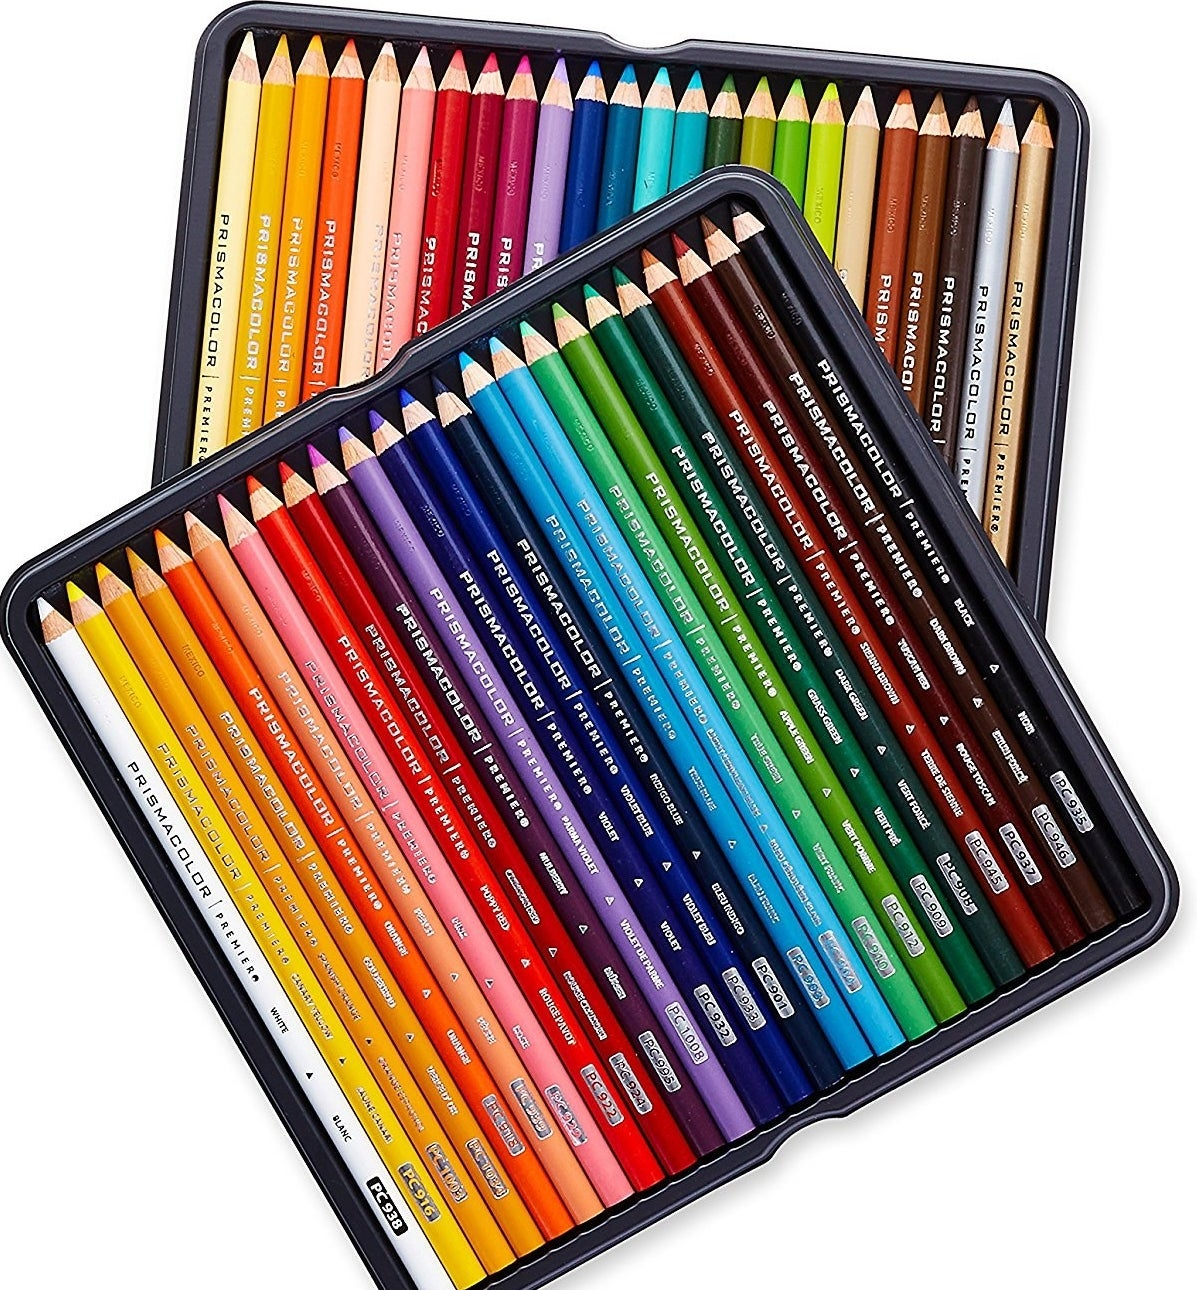 """Promising review: """"Without a doubt Prismacolor pencils are the top of the line, best colored pencils you can get inside of the US. The colors are rich and smooth, highly pigmented, they fully saturate the paper leaving no white space behind when used firmly, and they blend as well as alcohol markers. They may seem pricey for first time buyers, but I can promise they are 100% worth it! I got a small pack as a gift once and thought the giver was crazy for spending so much on colored pencils, but after using them I became hooked and never looked back!"""" —Leslie DelpGet them from Amazon for $23.83+ (available in packs of 48, 72, 132, and 150)."""